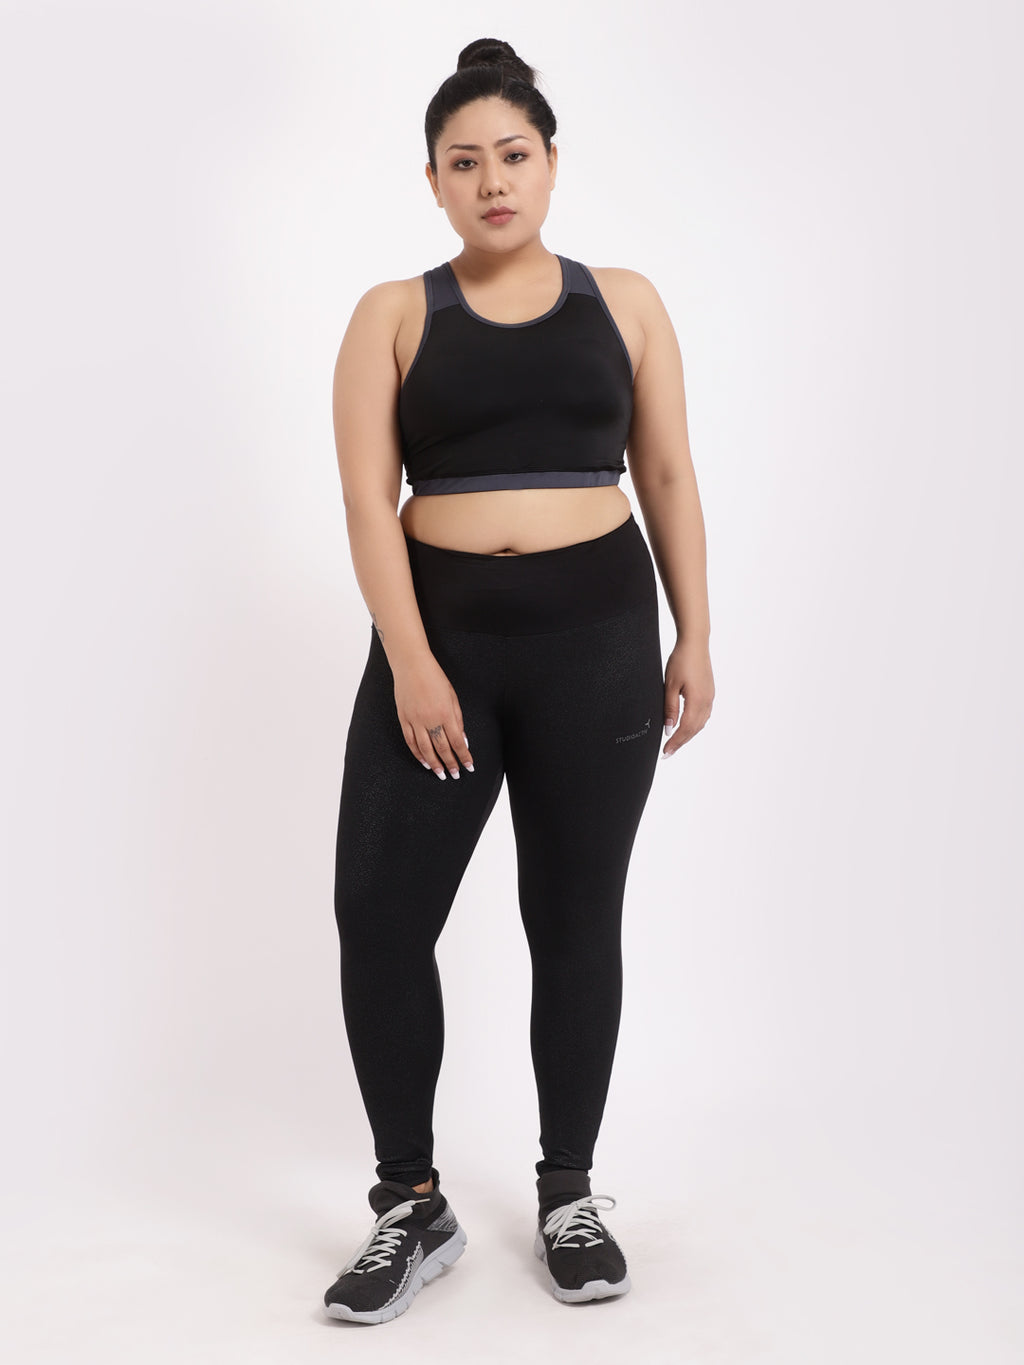 Plain Black Premium Leggings